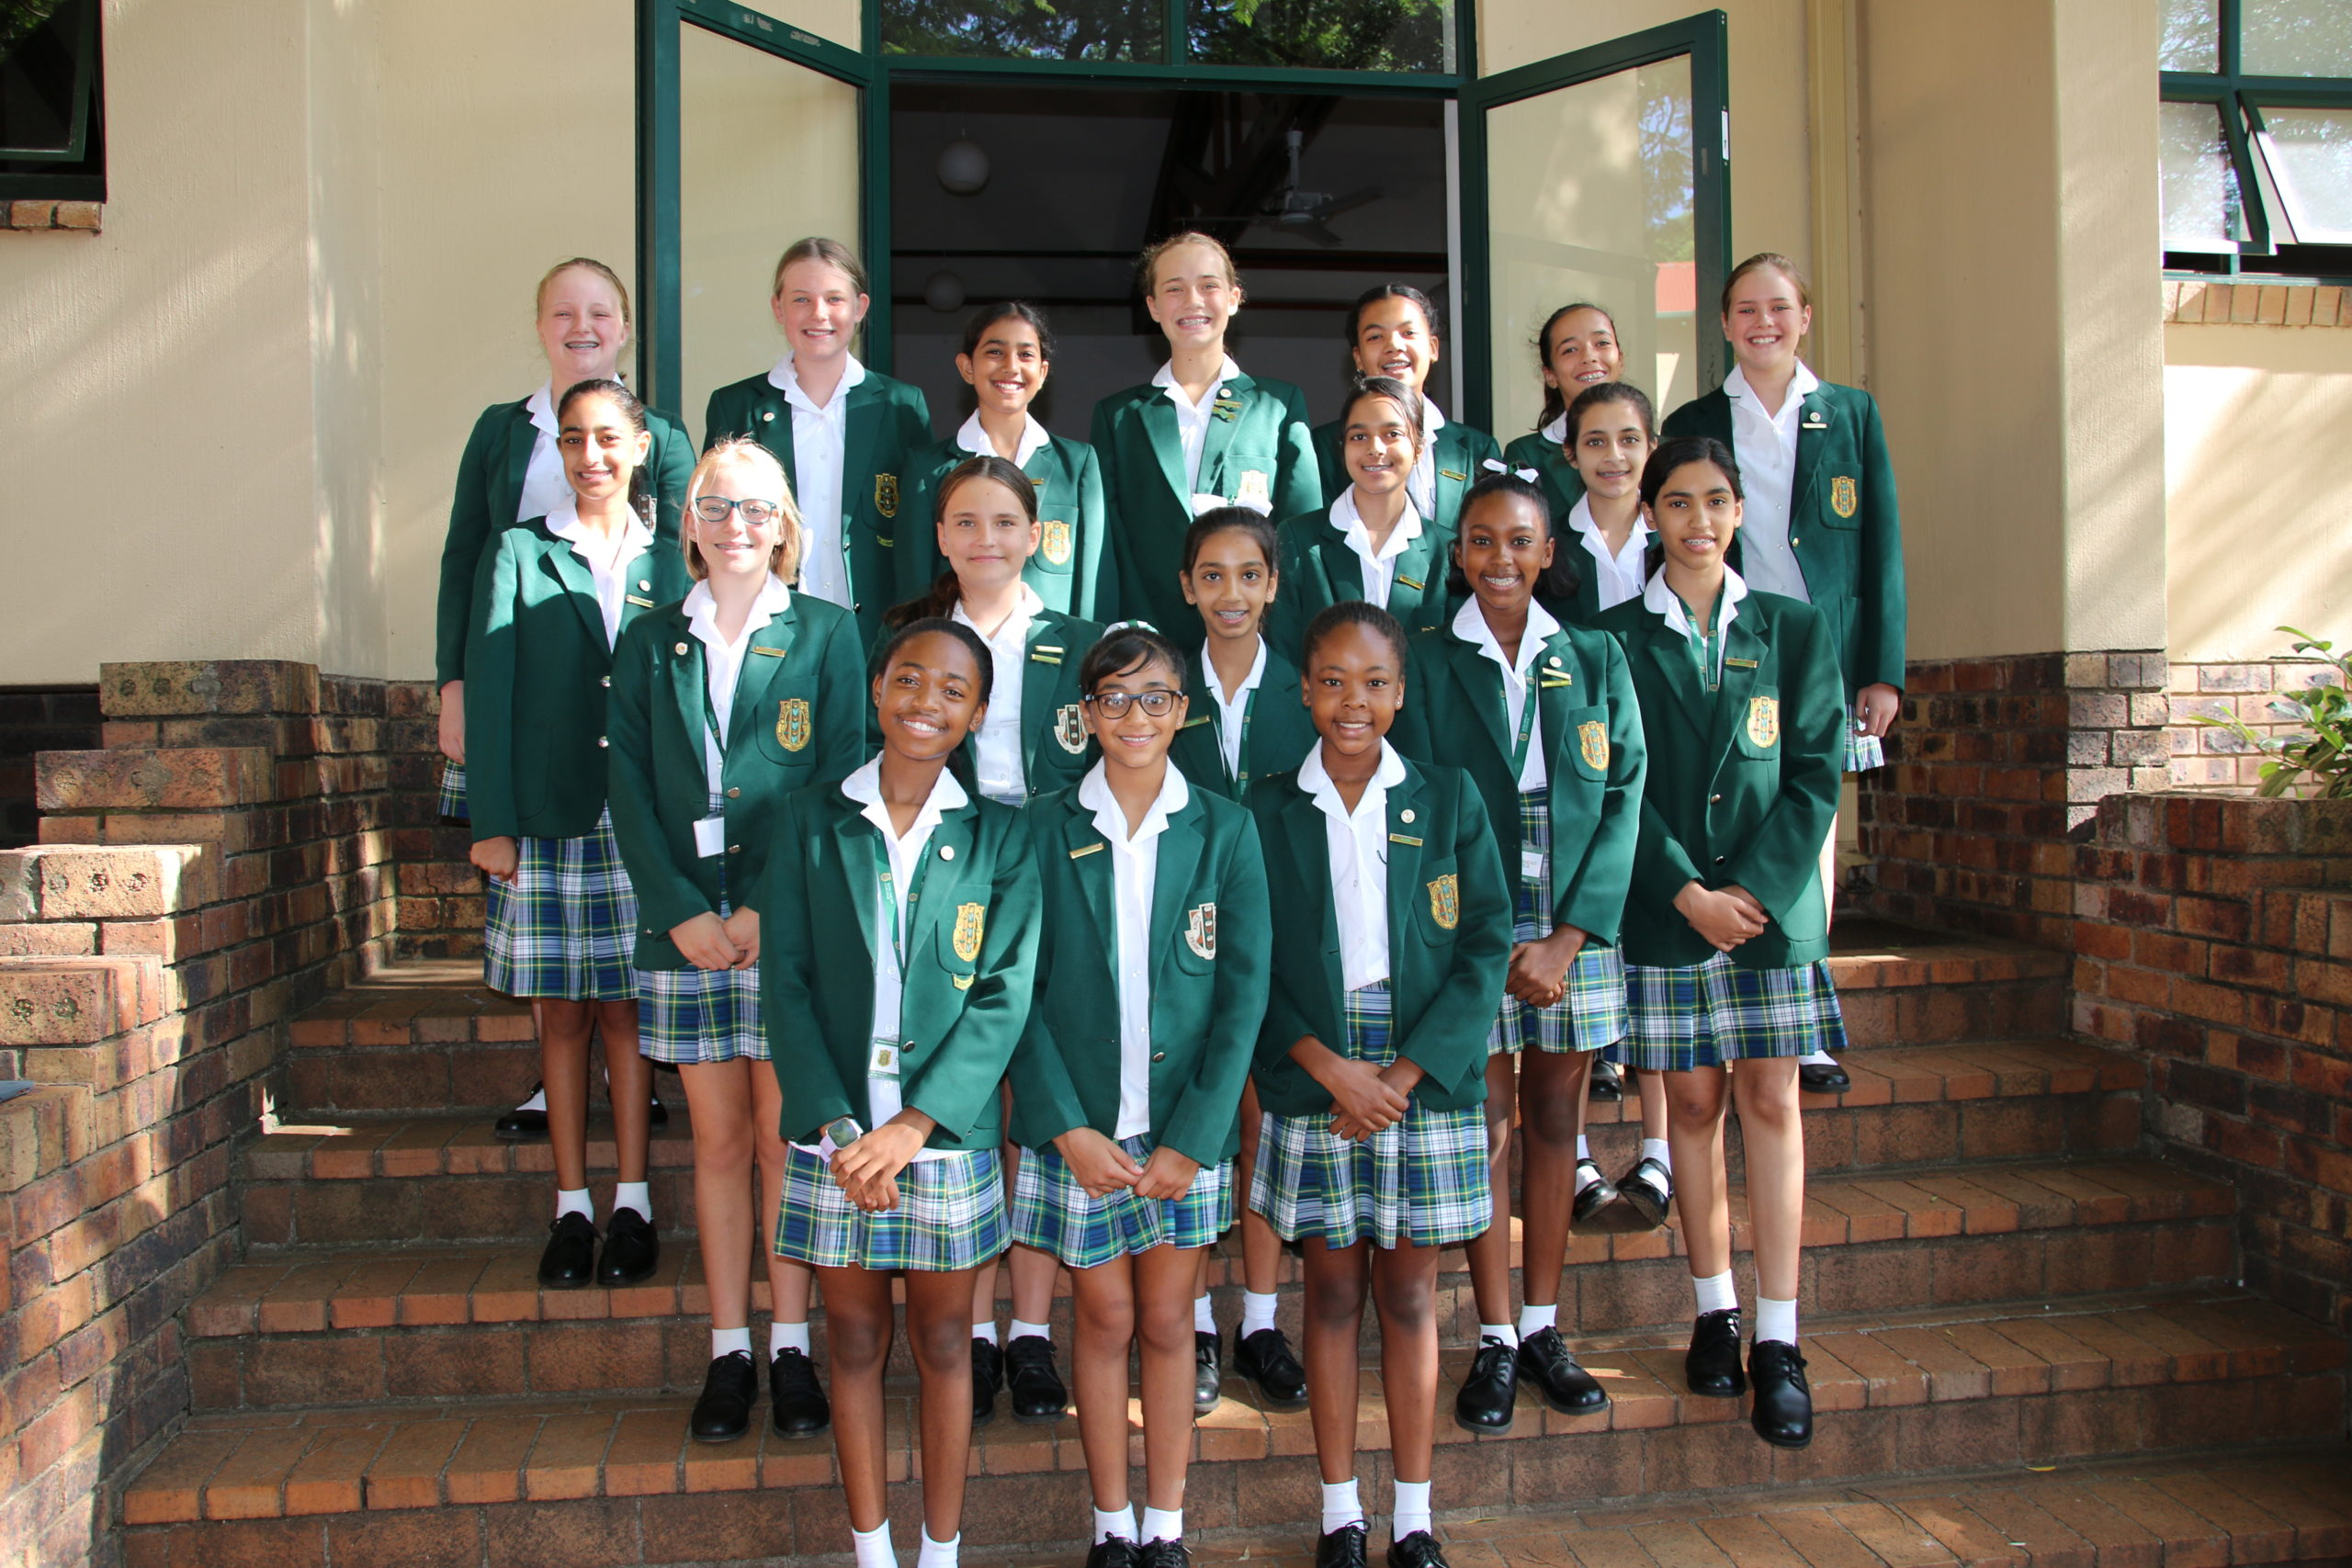 CLASS COMMITTEE scaled Kingsmead College